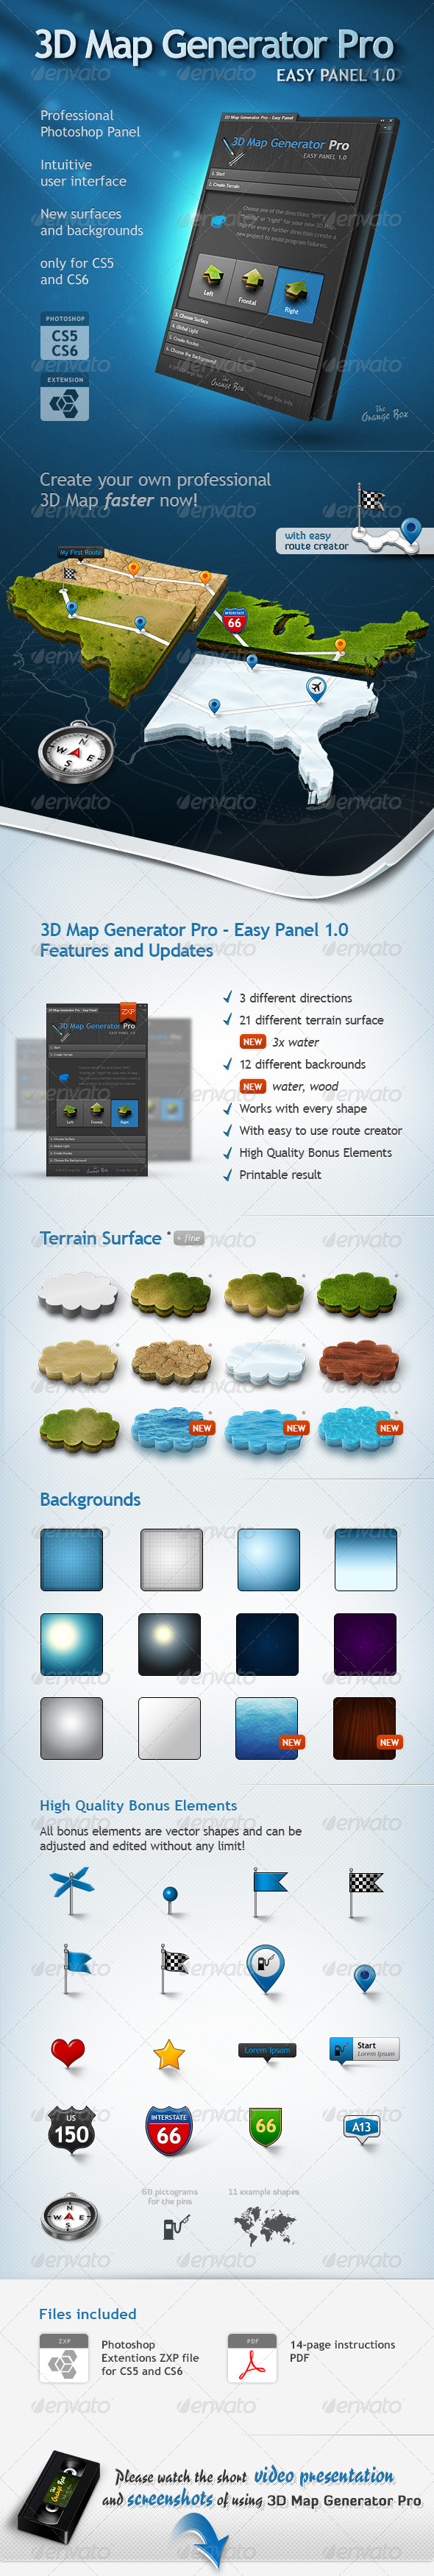 GraphicRiver 3D Map Generator Pro Easy Panel 3540744